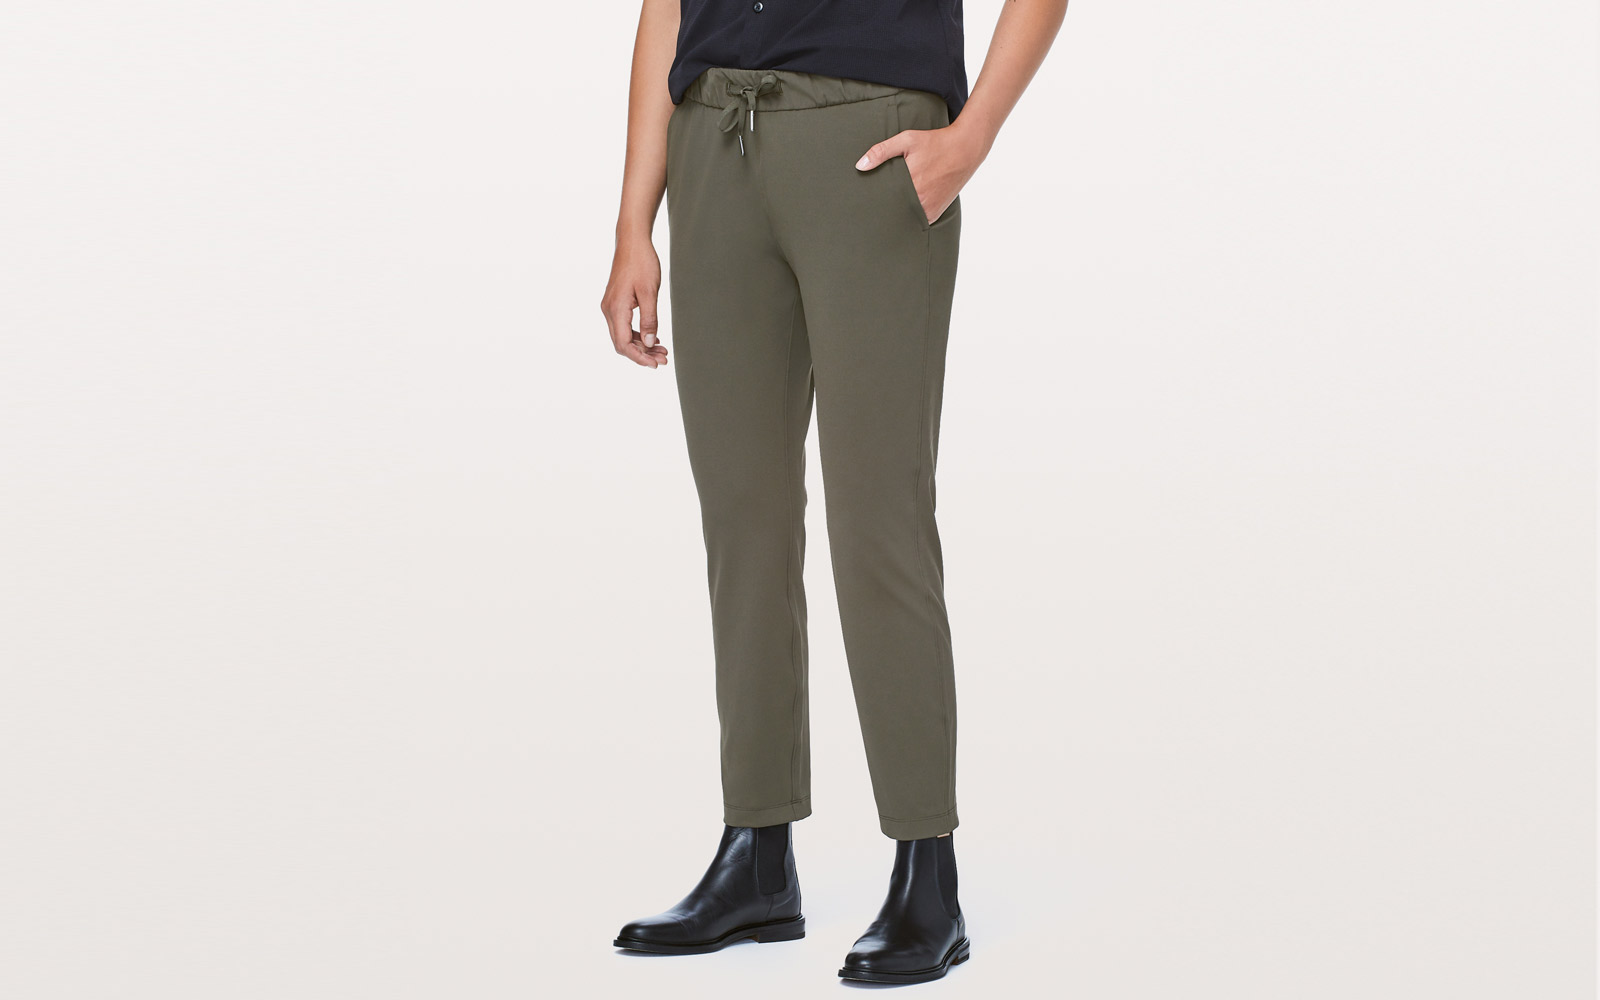 a98960b4302 The Best Travel Pants for Women Who Hate Flying in Jeans